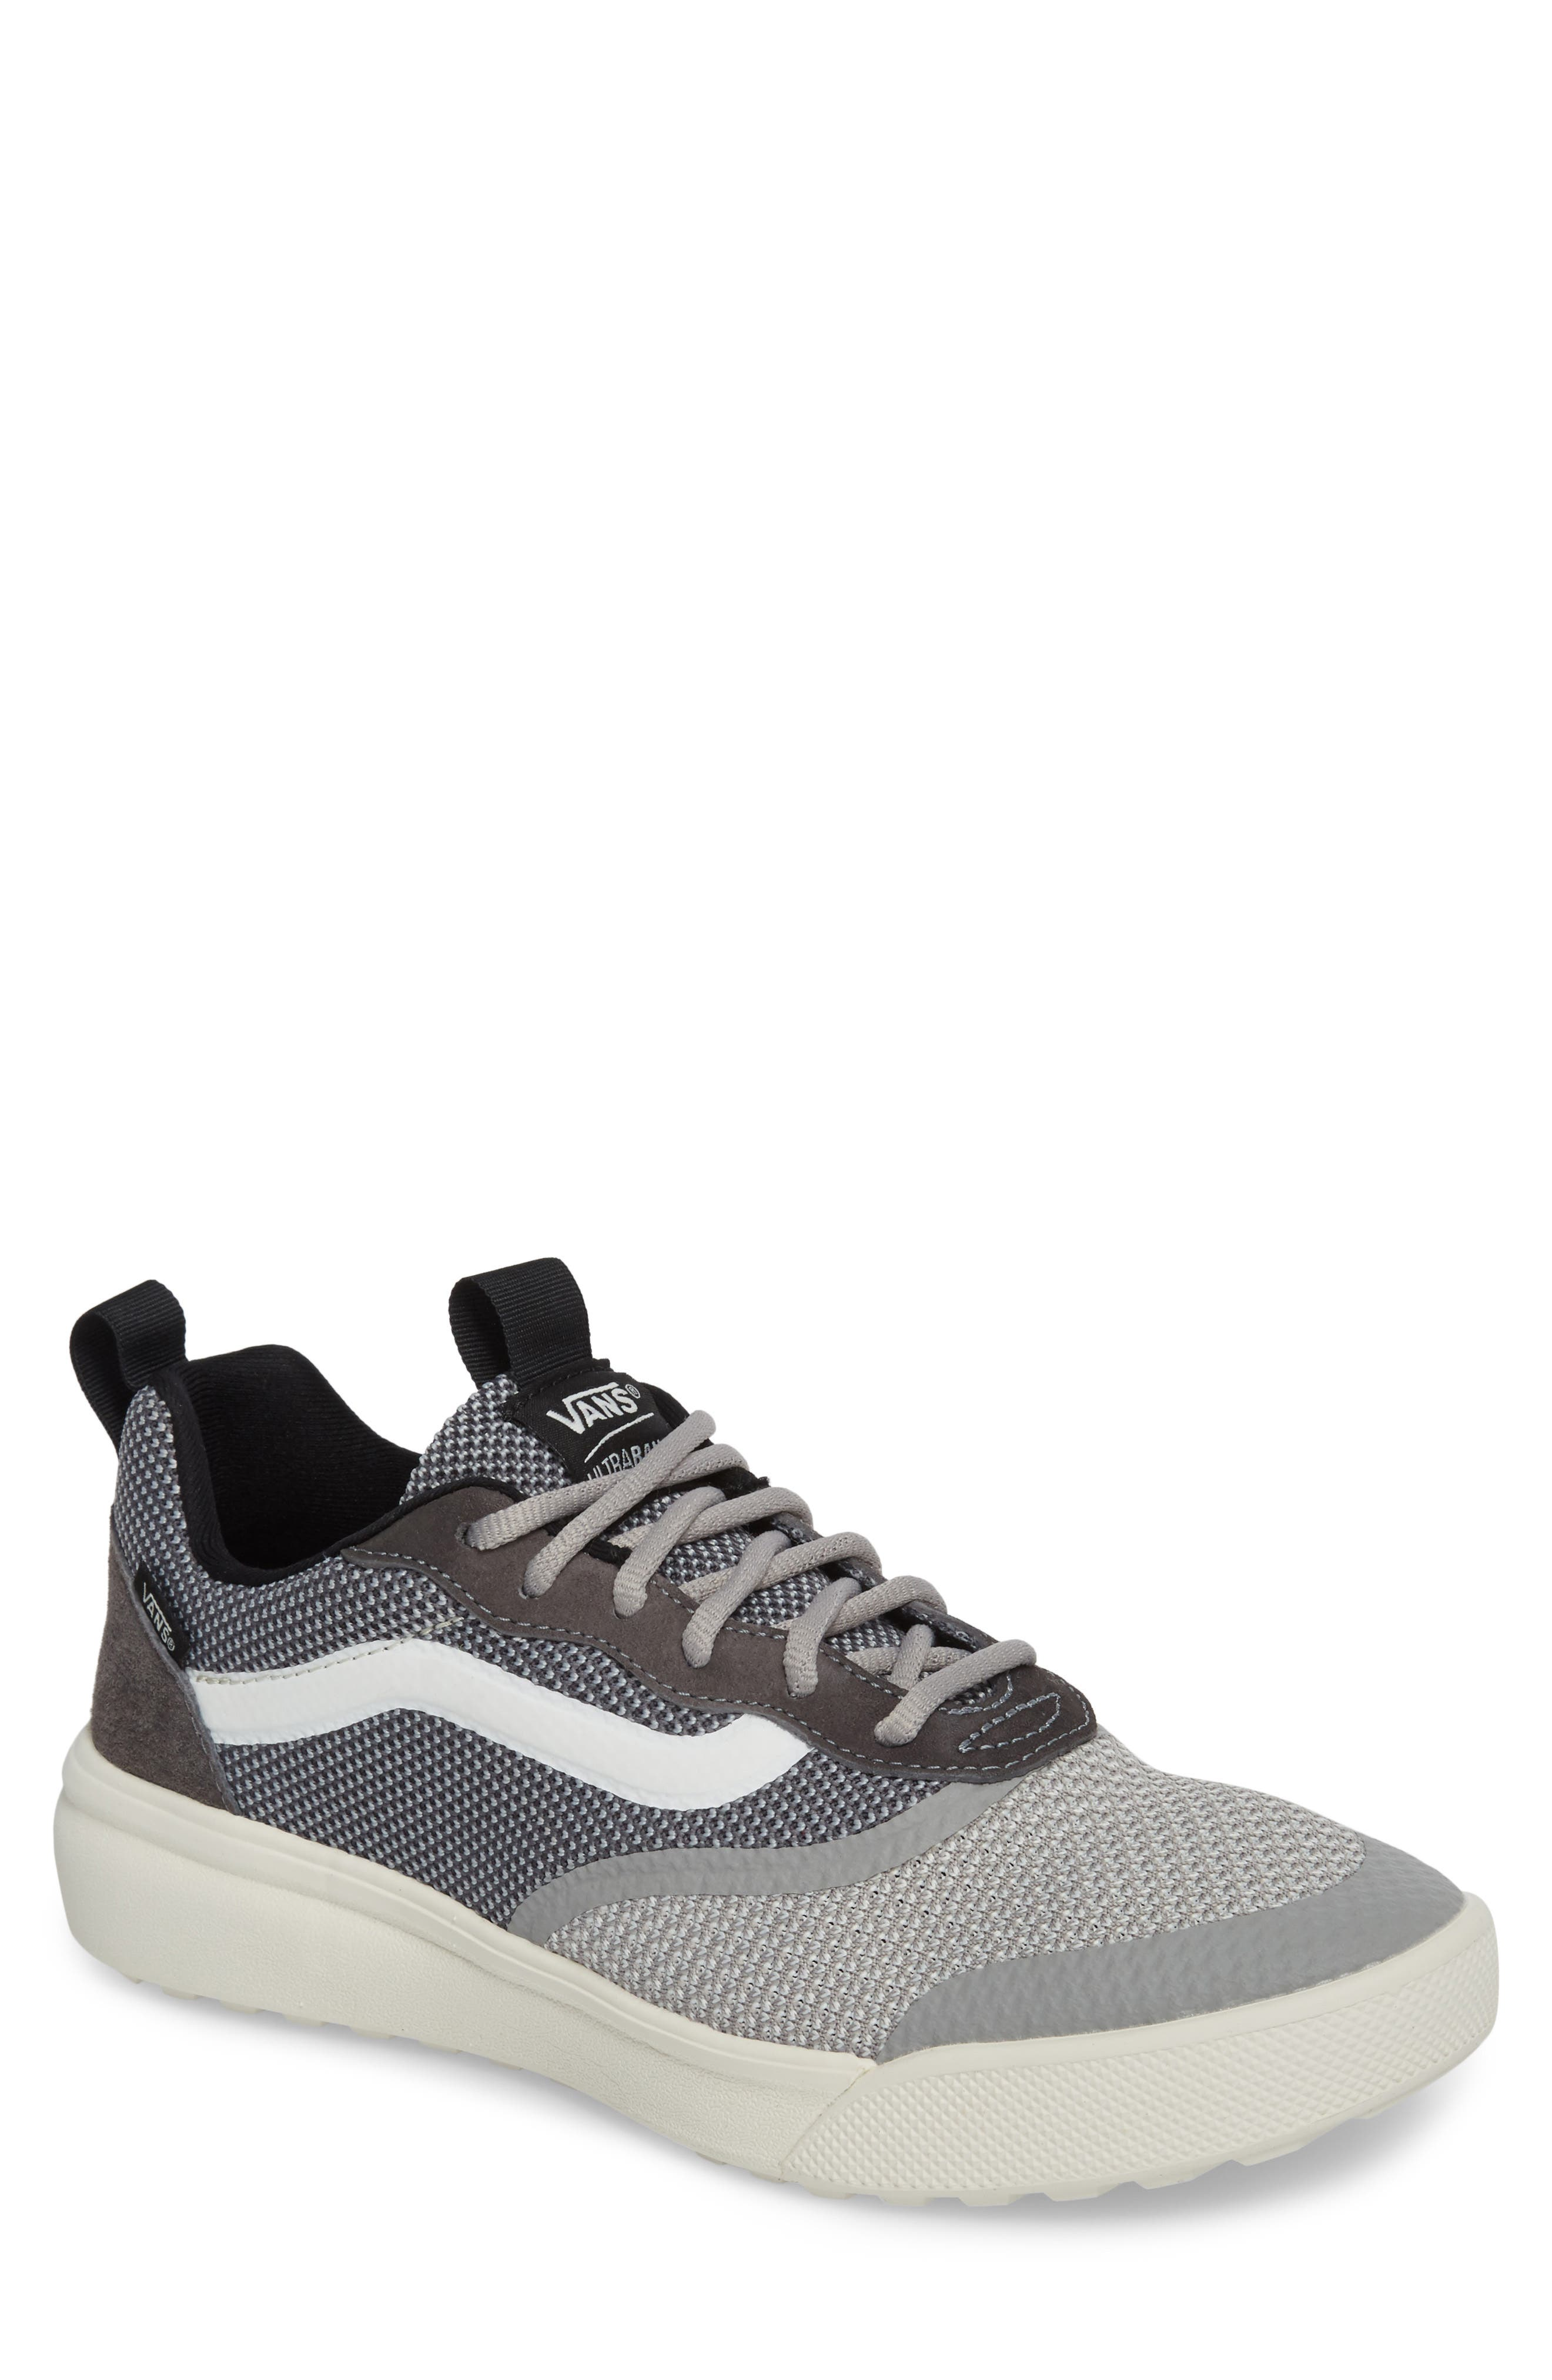 UltraRange DX Low Top Sneaker,                         Main,                         color, Pewter/ Drizzle